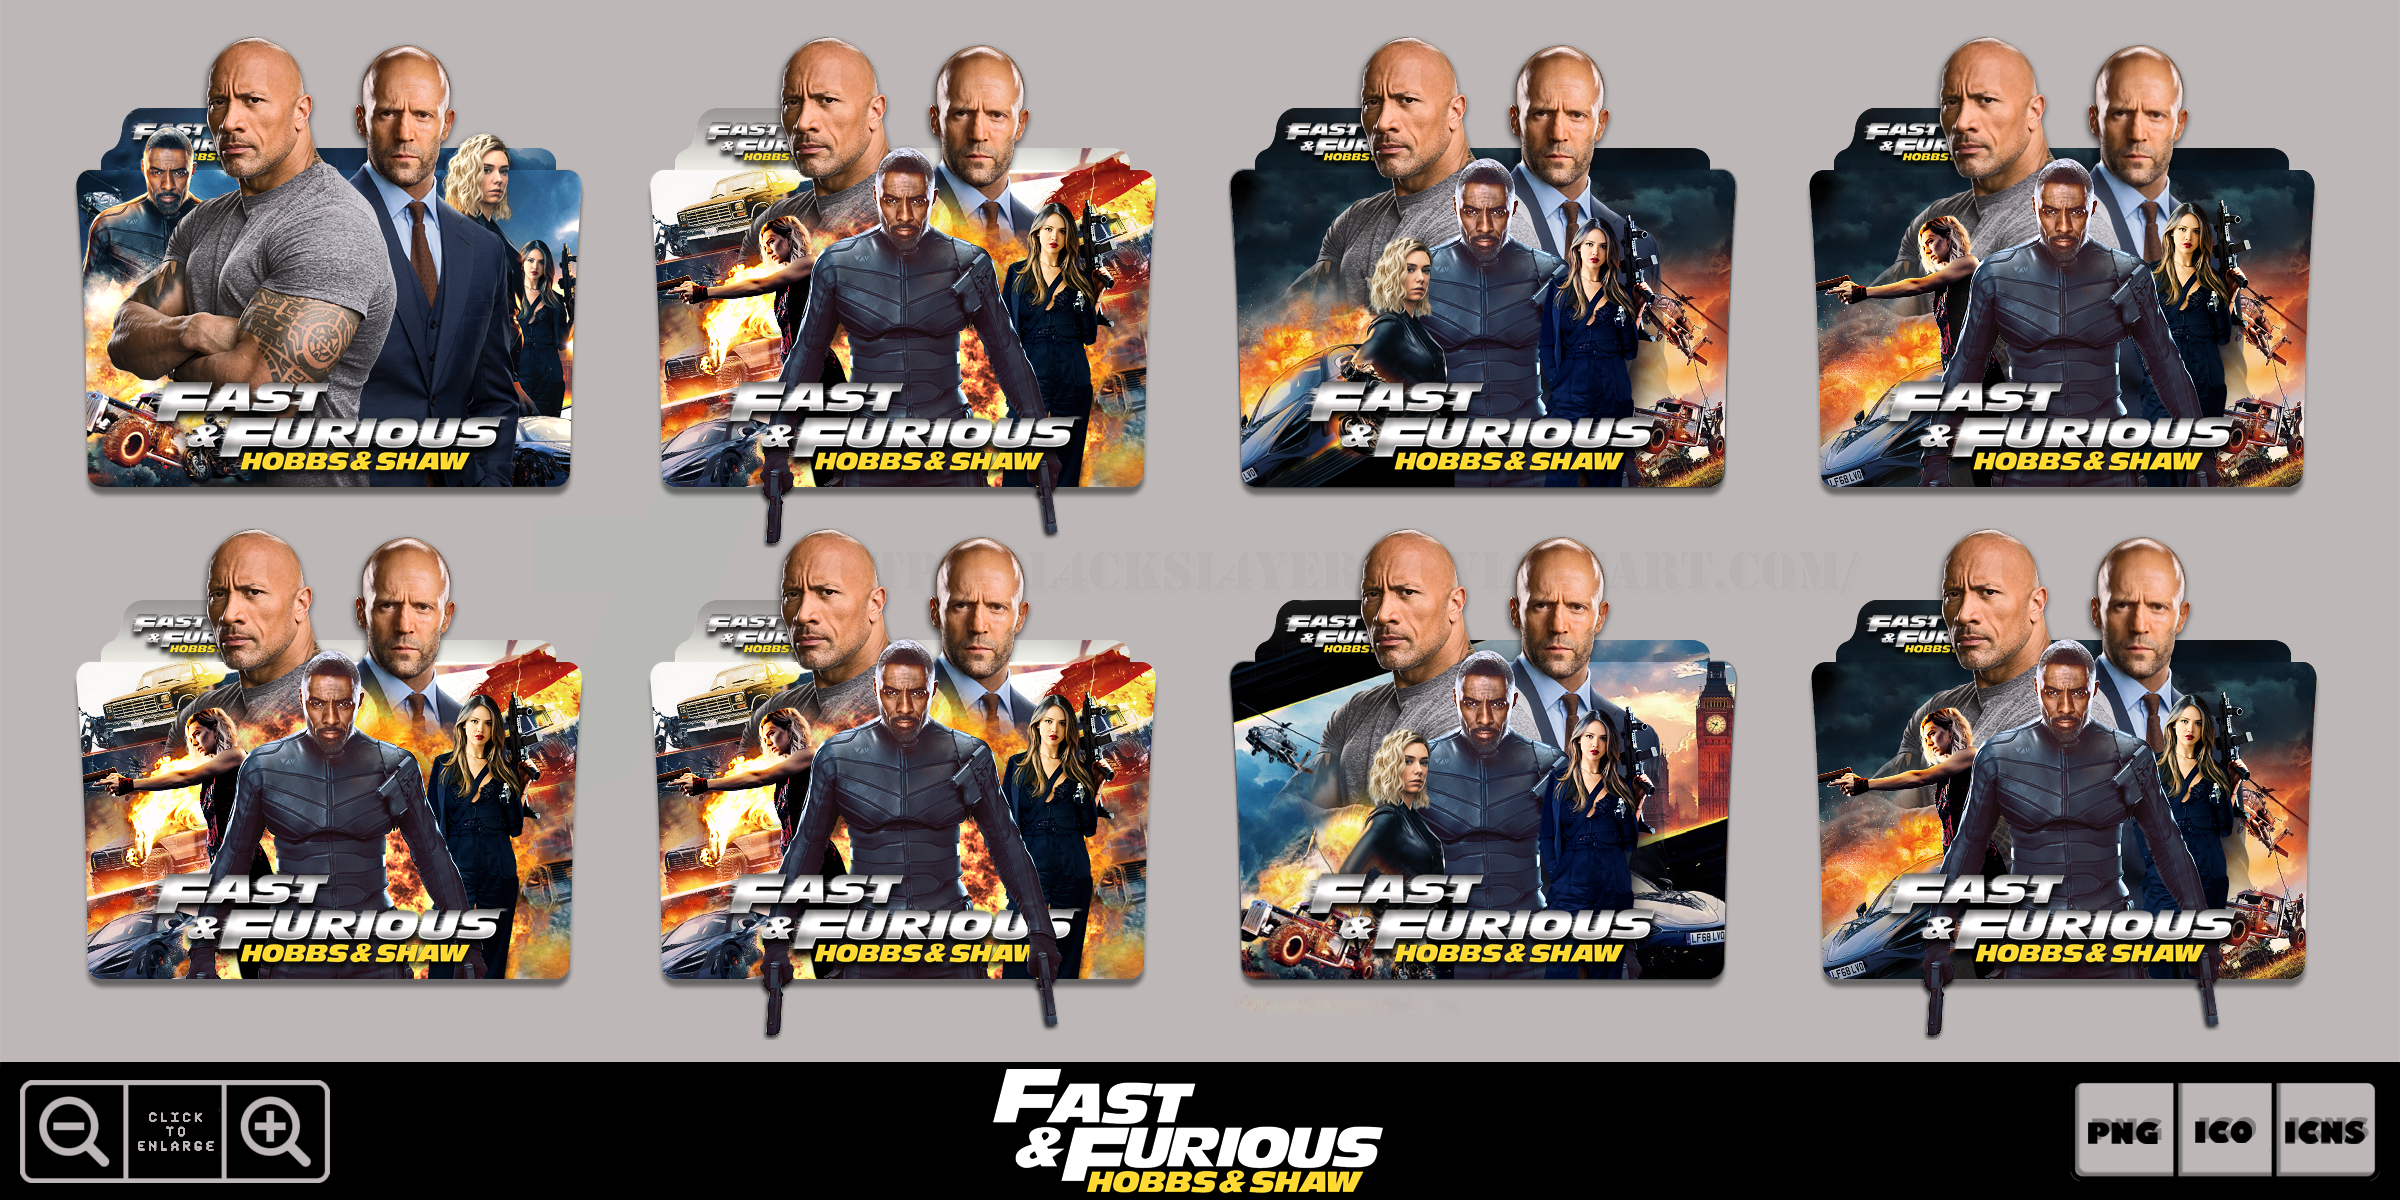 Fast And Furious Hobbs And Shaw 2019 Icon Pack By Bl4cksl4yer On Deviantart